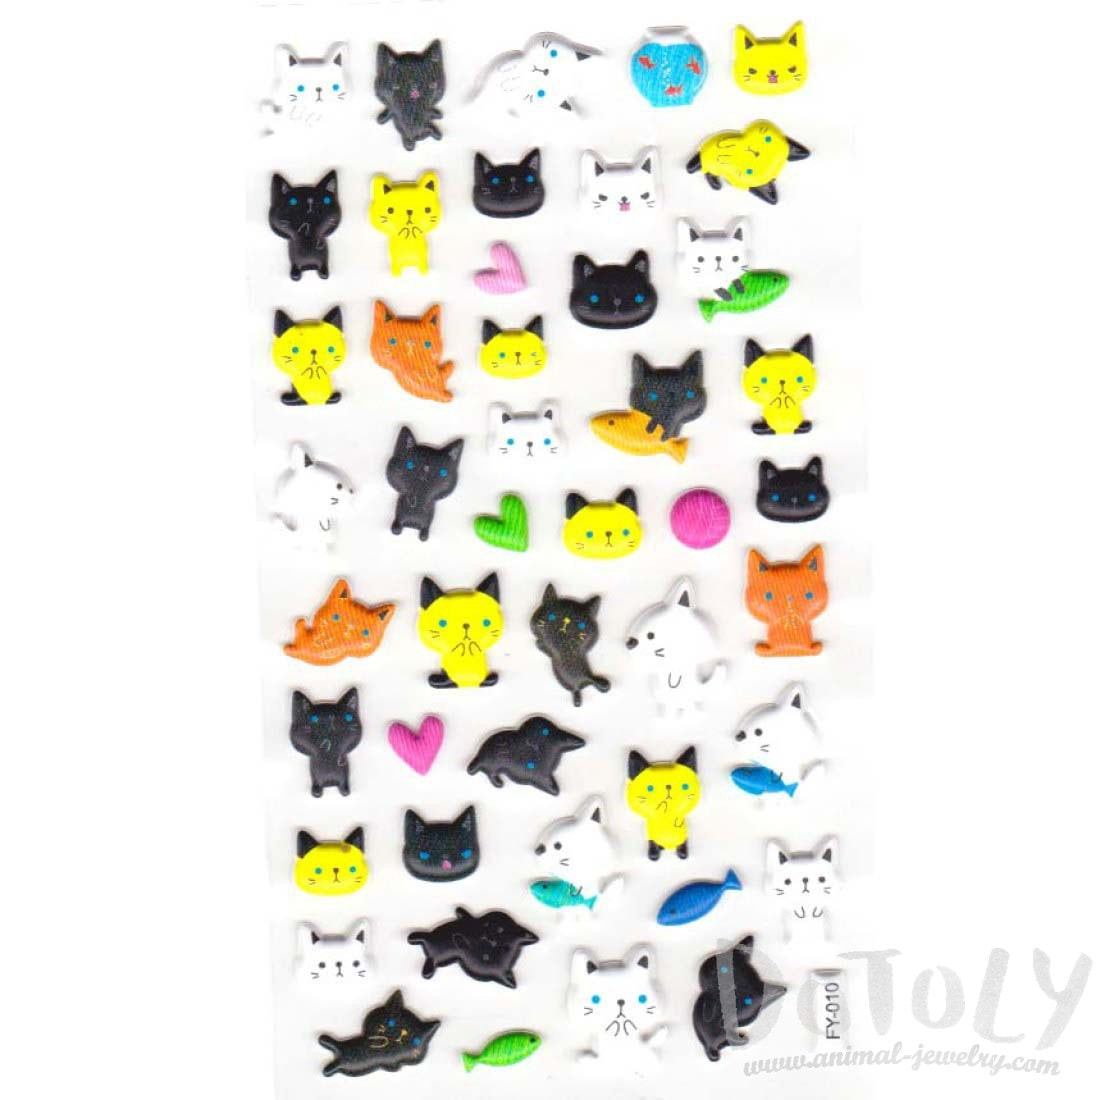 Kitty Cat Shaped Puffy Sticker Seals for Decorating